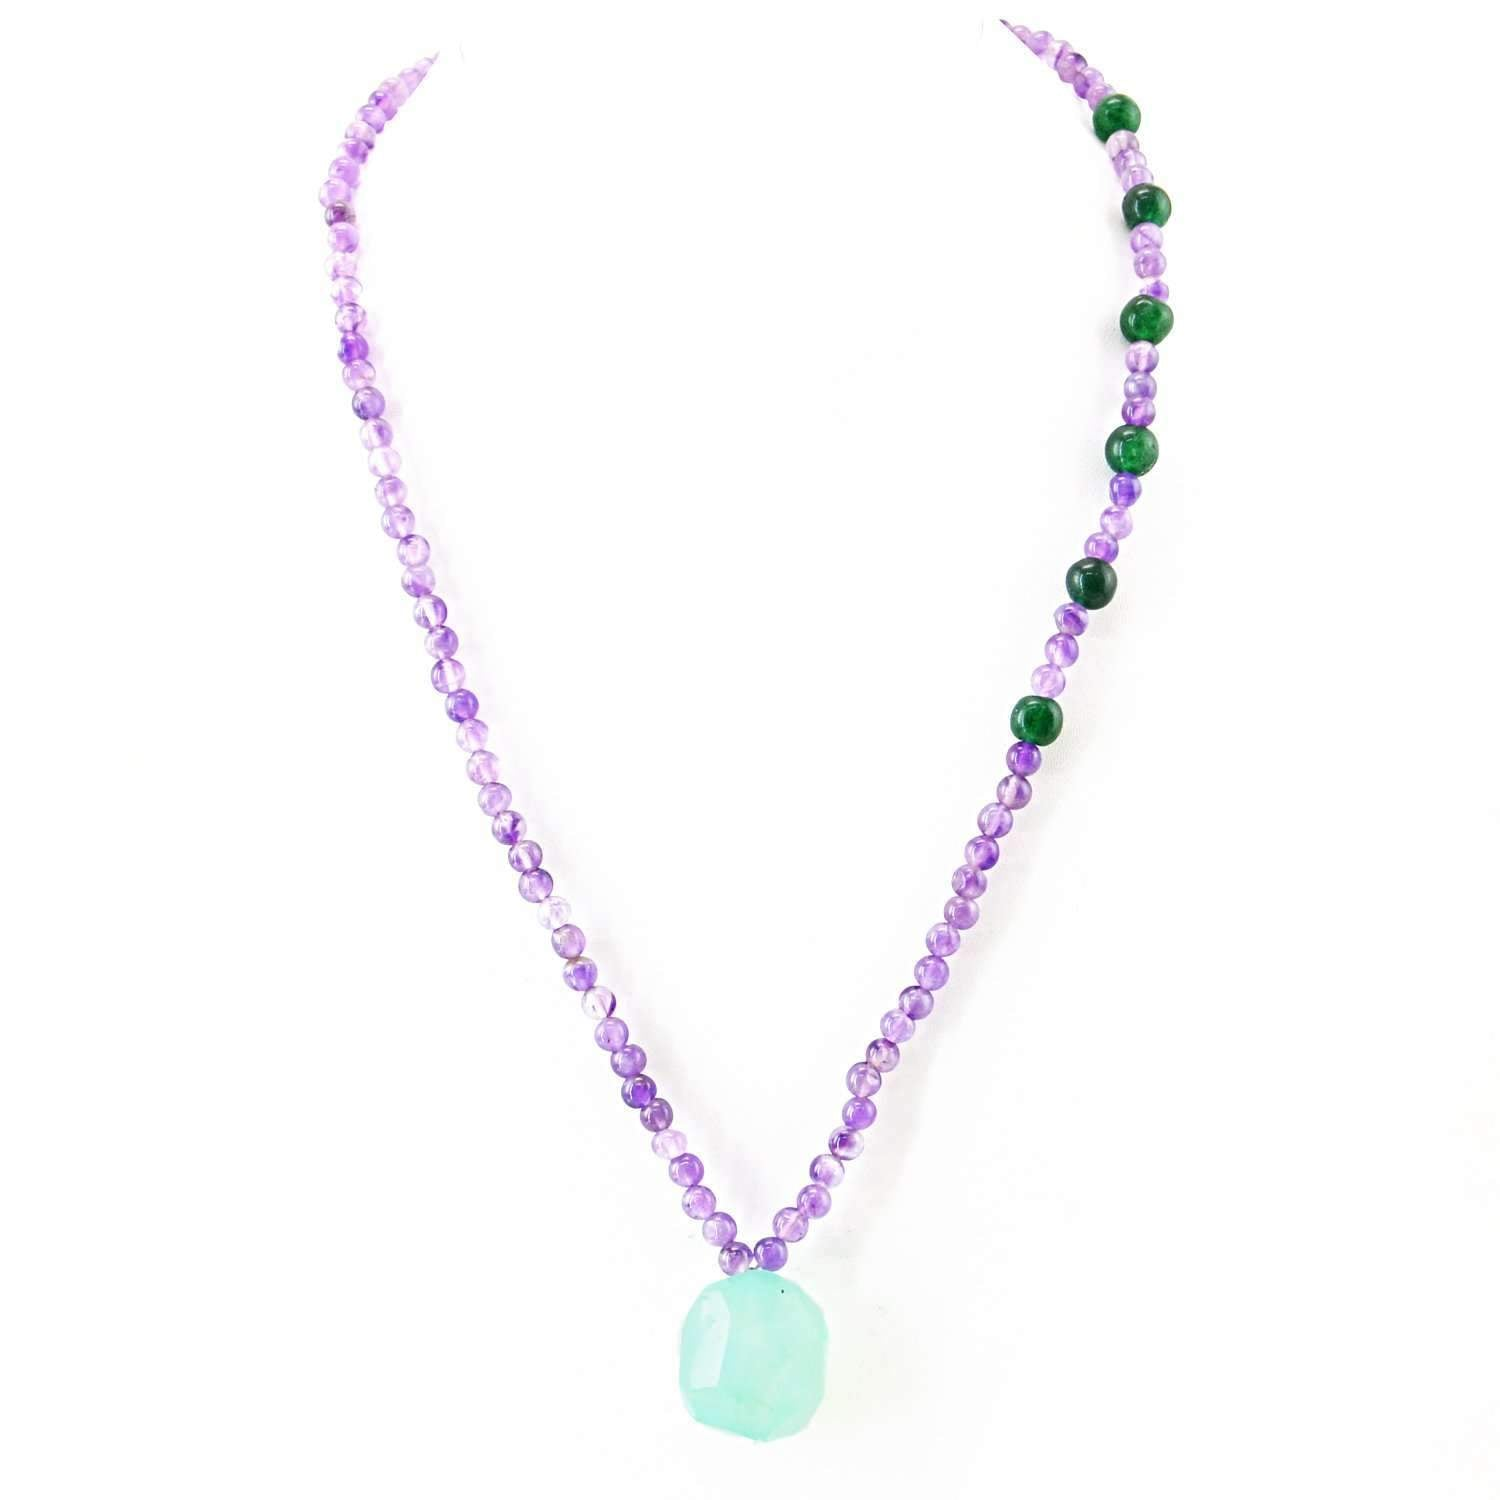 gemsmore:Round Shape Purple Amethyst & Green Jade Necklace Natural Untreated Beads